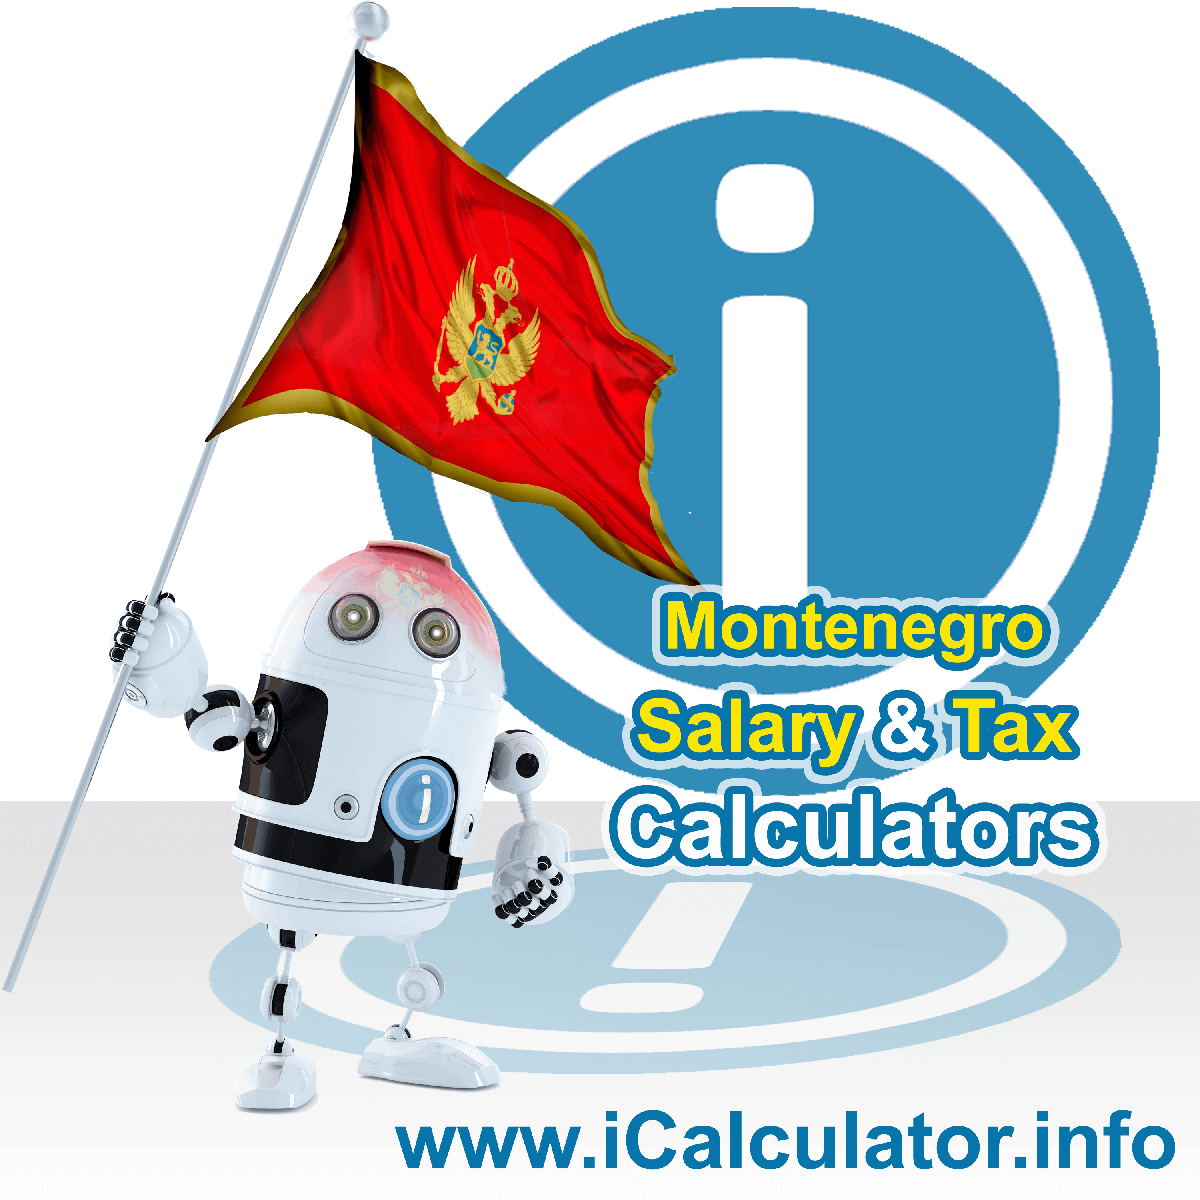 Montenegro Tax Calculator. This image shows the Montenegro flag and information relating to the tax formula for the Montenegro Salary Calculator